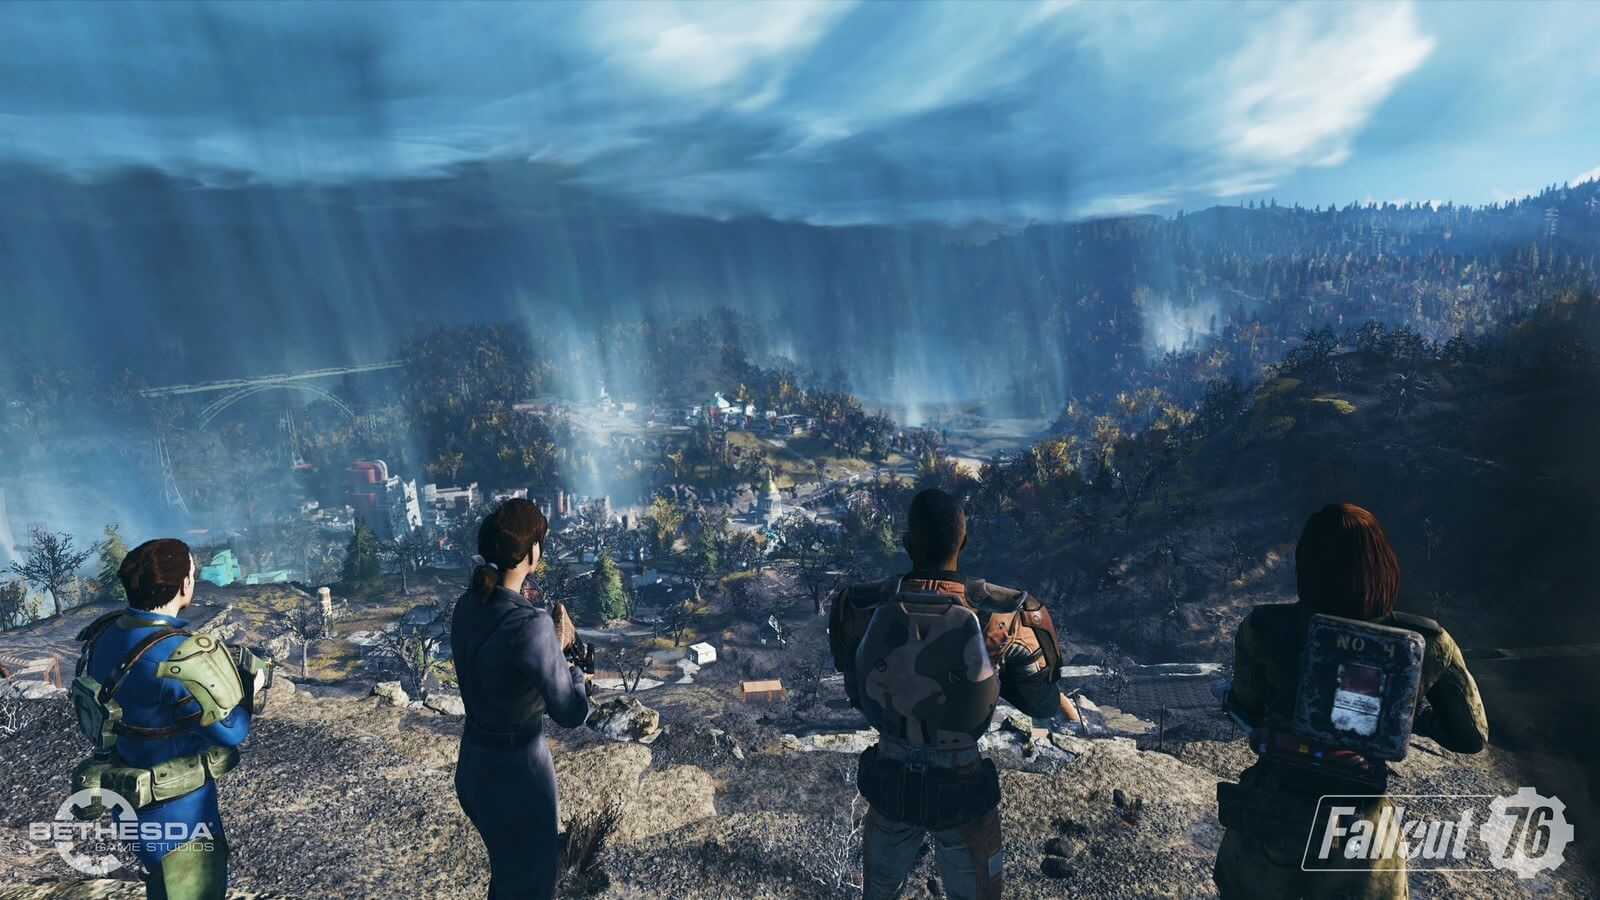 Fallout 76 uses strict bounty system to discourage killing innocent players